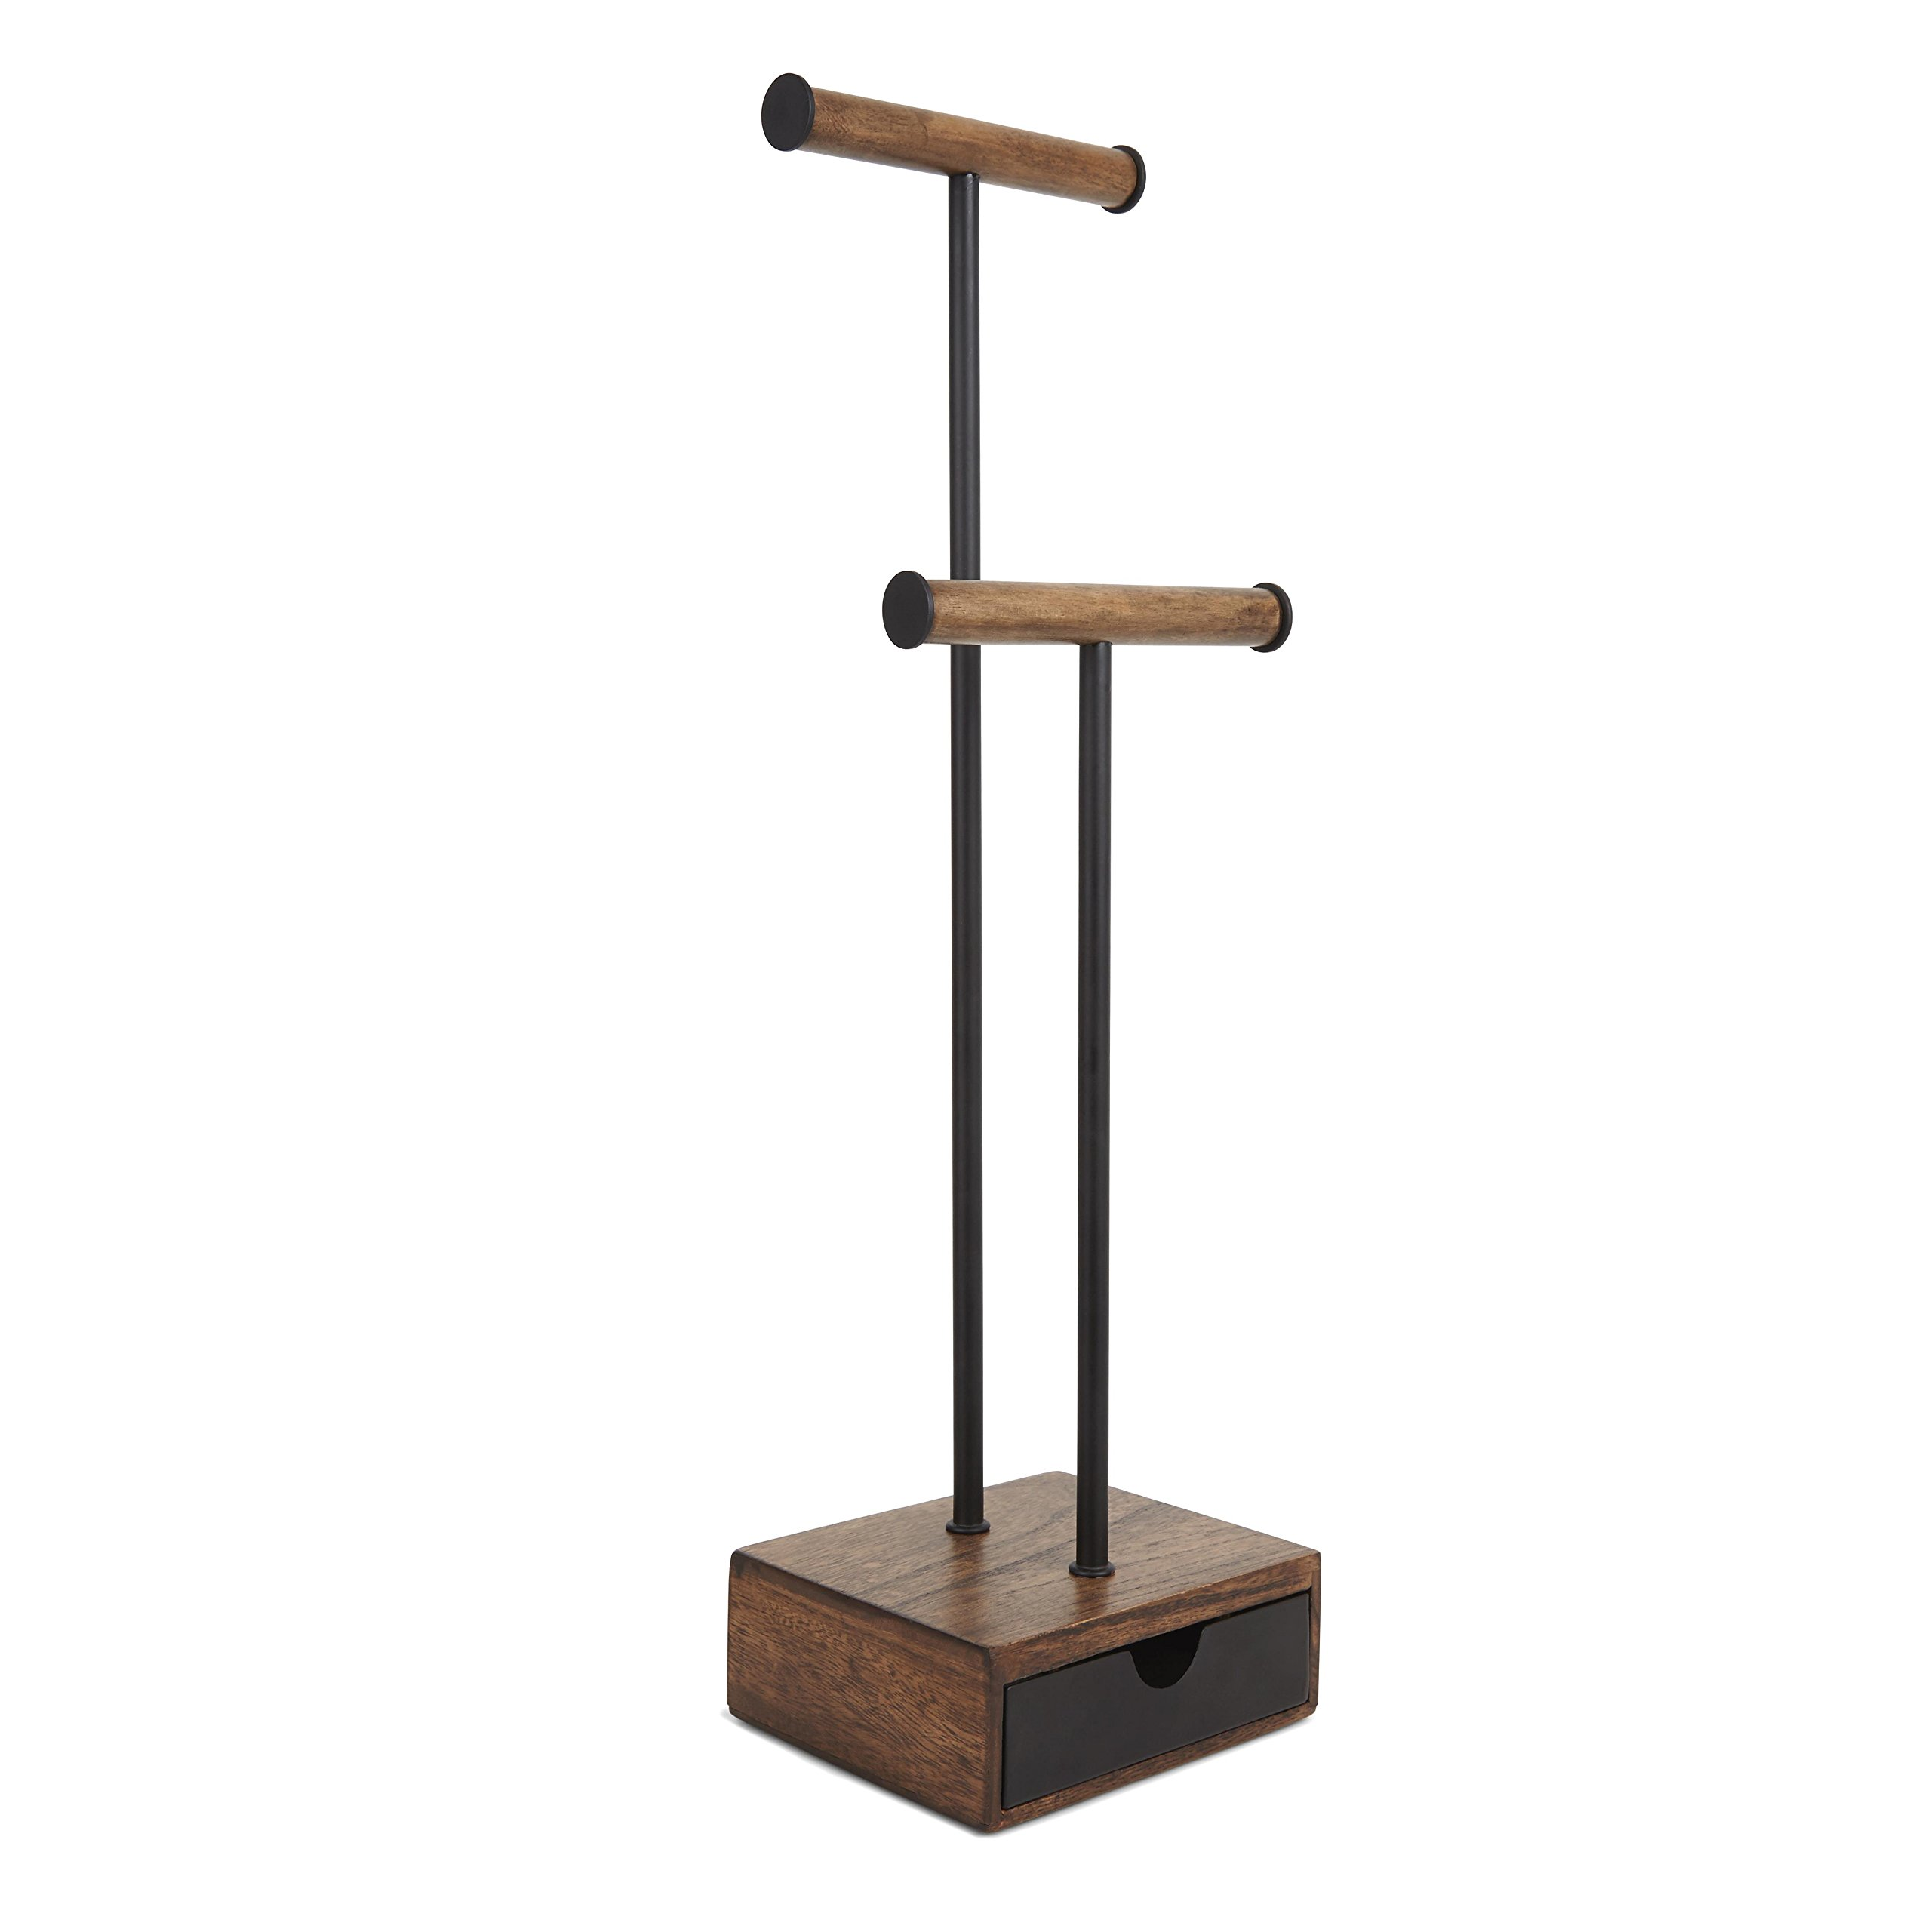 Umbra Pillar Jewelry Stand/Jewelry Organizer Walnut and Black Metal Jewelry Stand With Drawer by Umbra (Image #1)